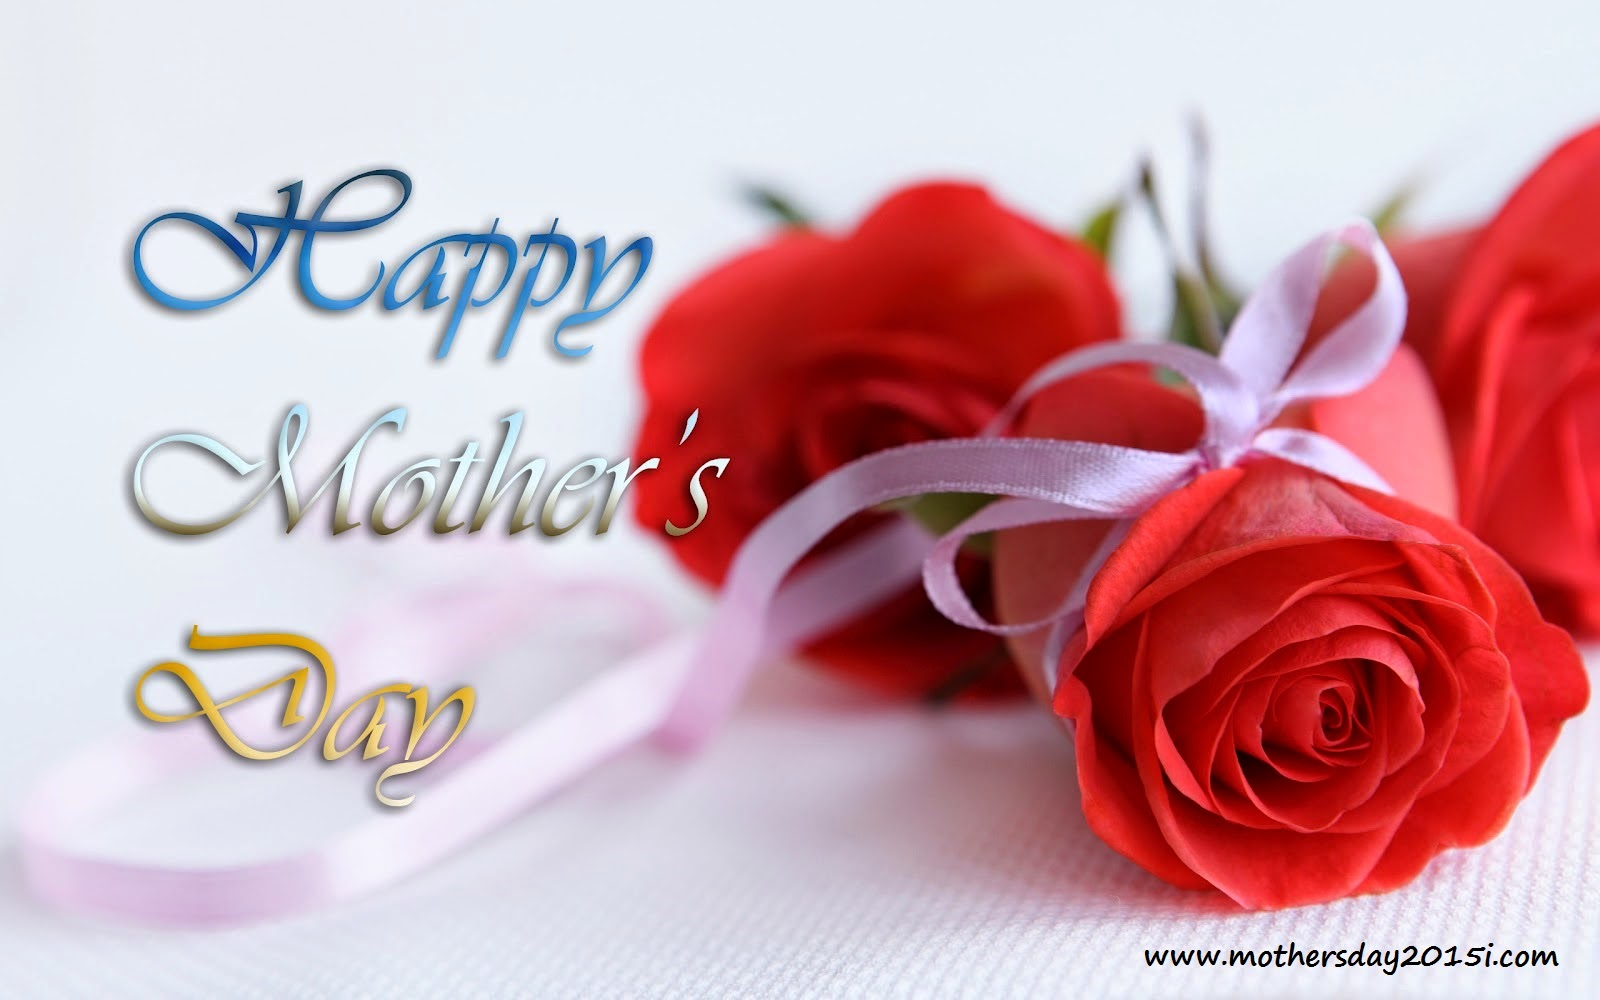 Happy mothers day messages wishes sms quotes 2016 happy mothers day messages 1 kristyandbryce Image collections